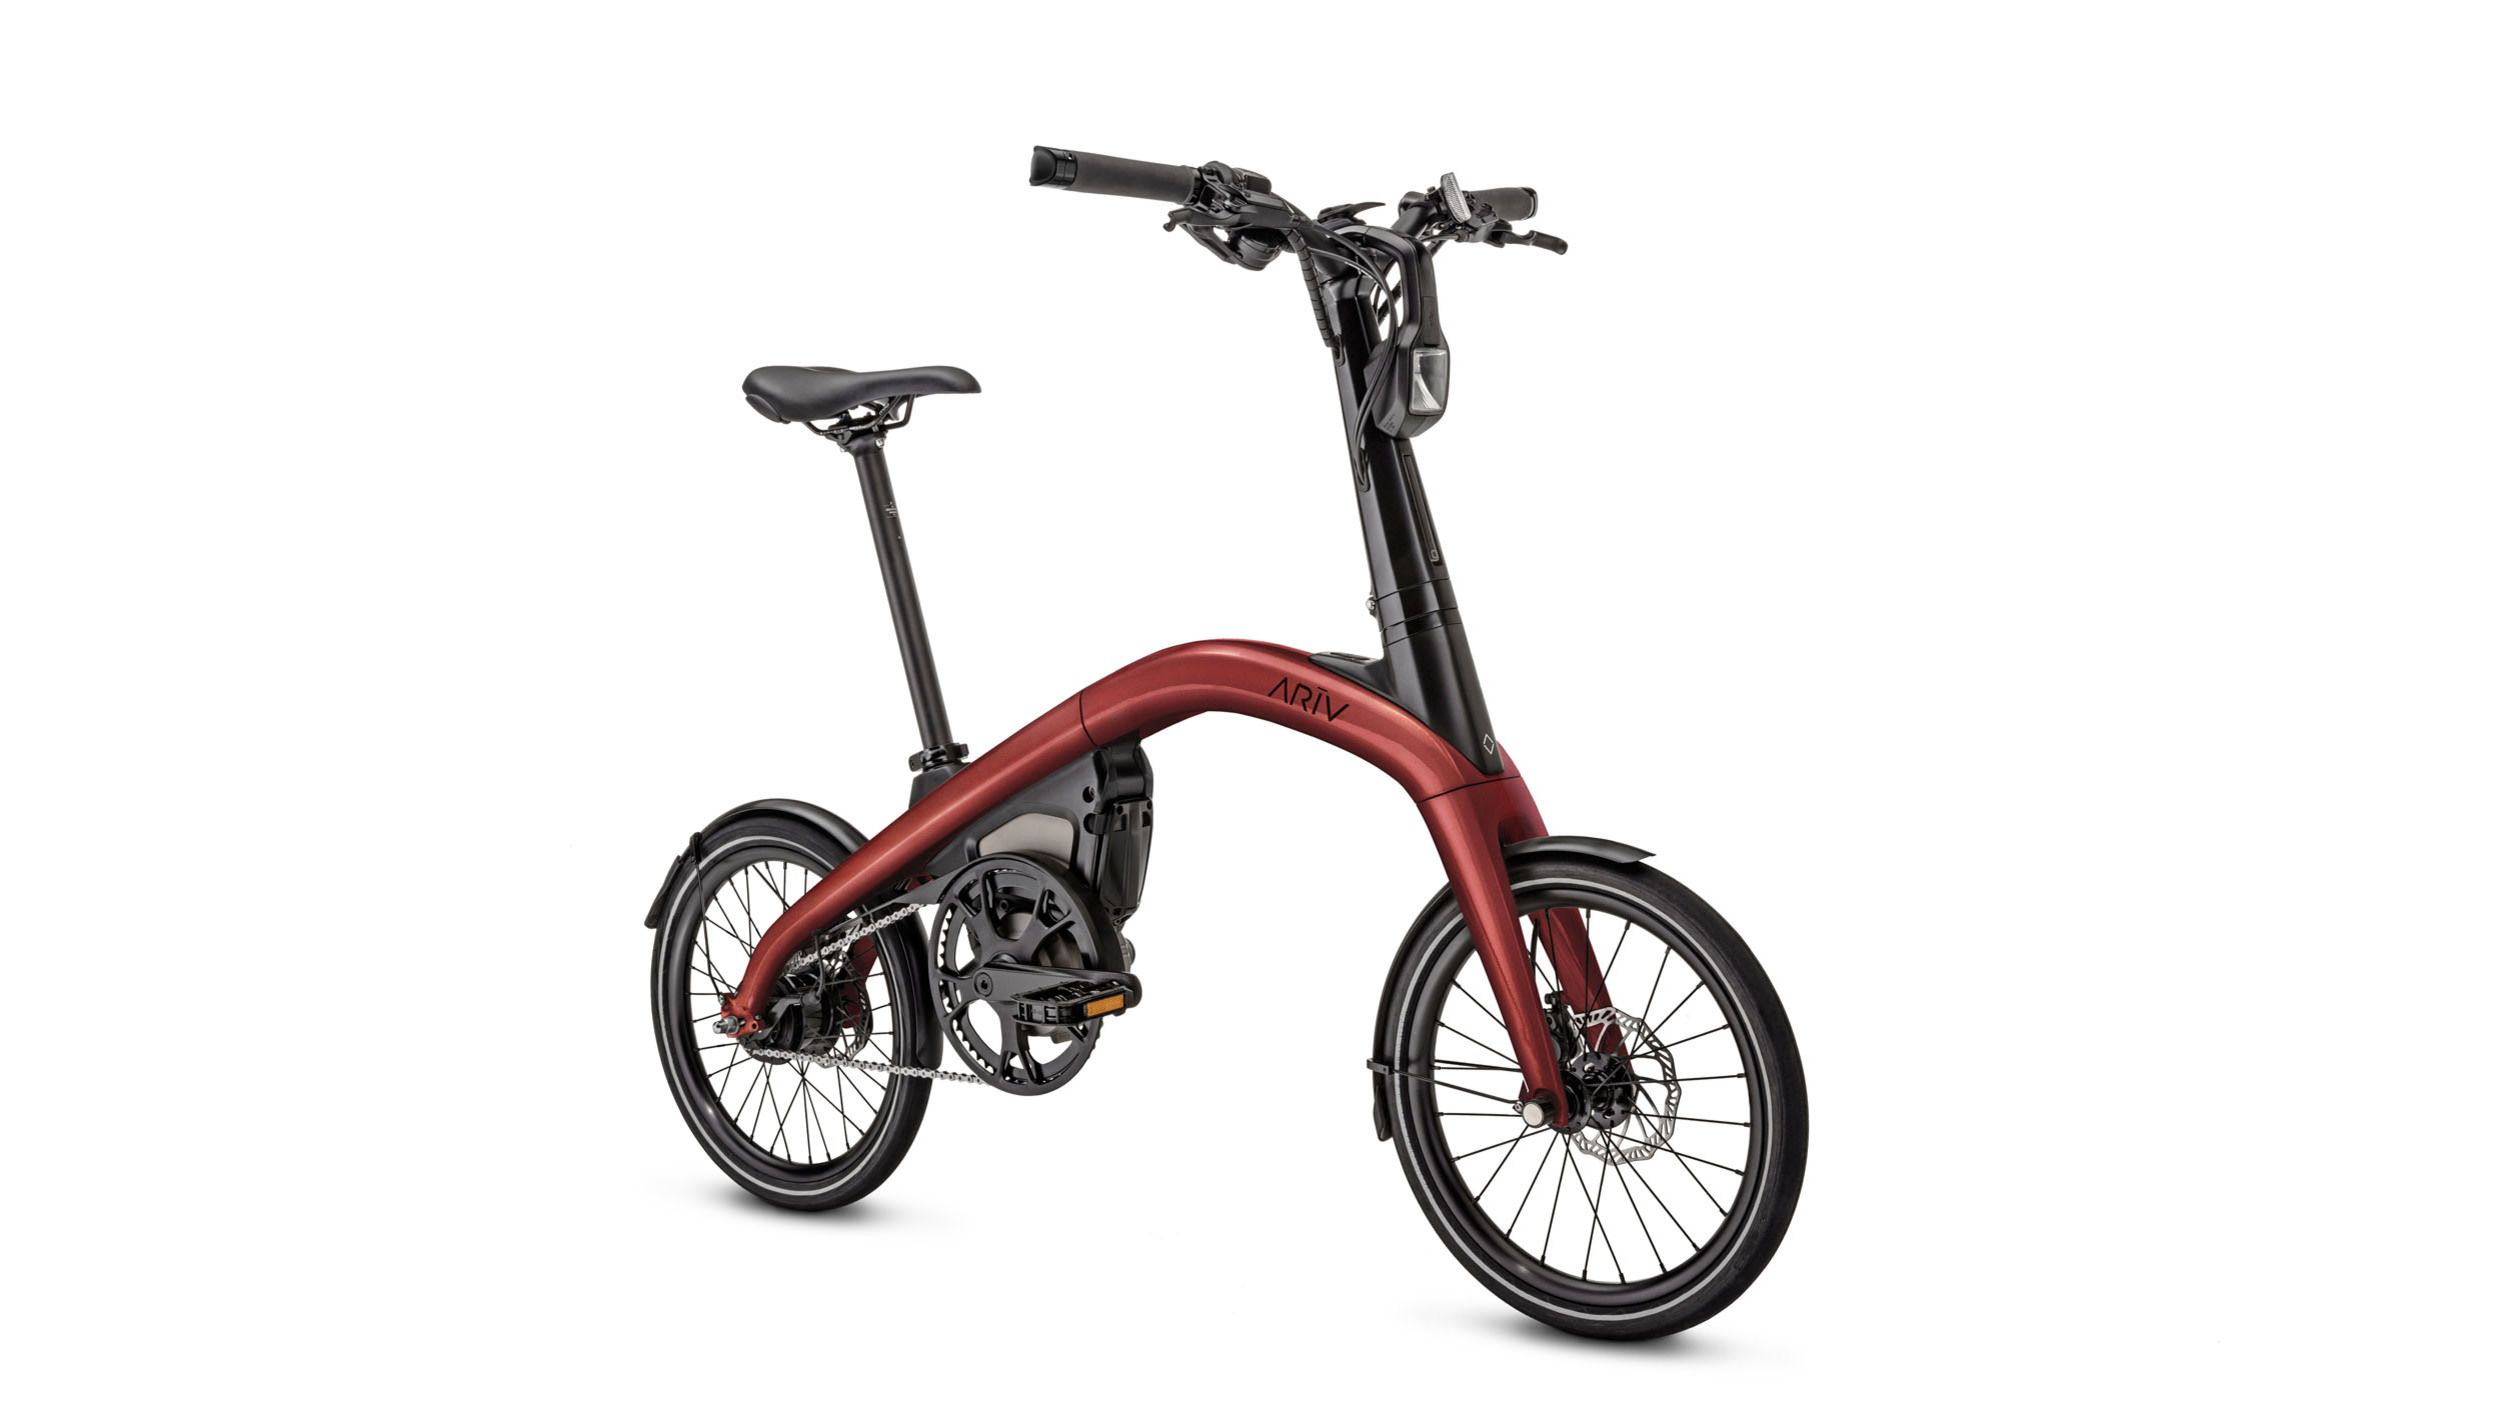 GM pushes electric bicycle brand Ariv to land in Europe this year